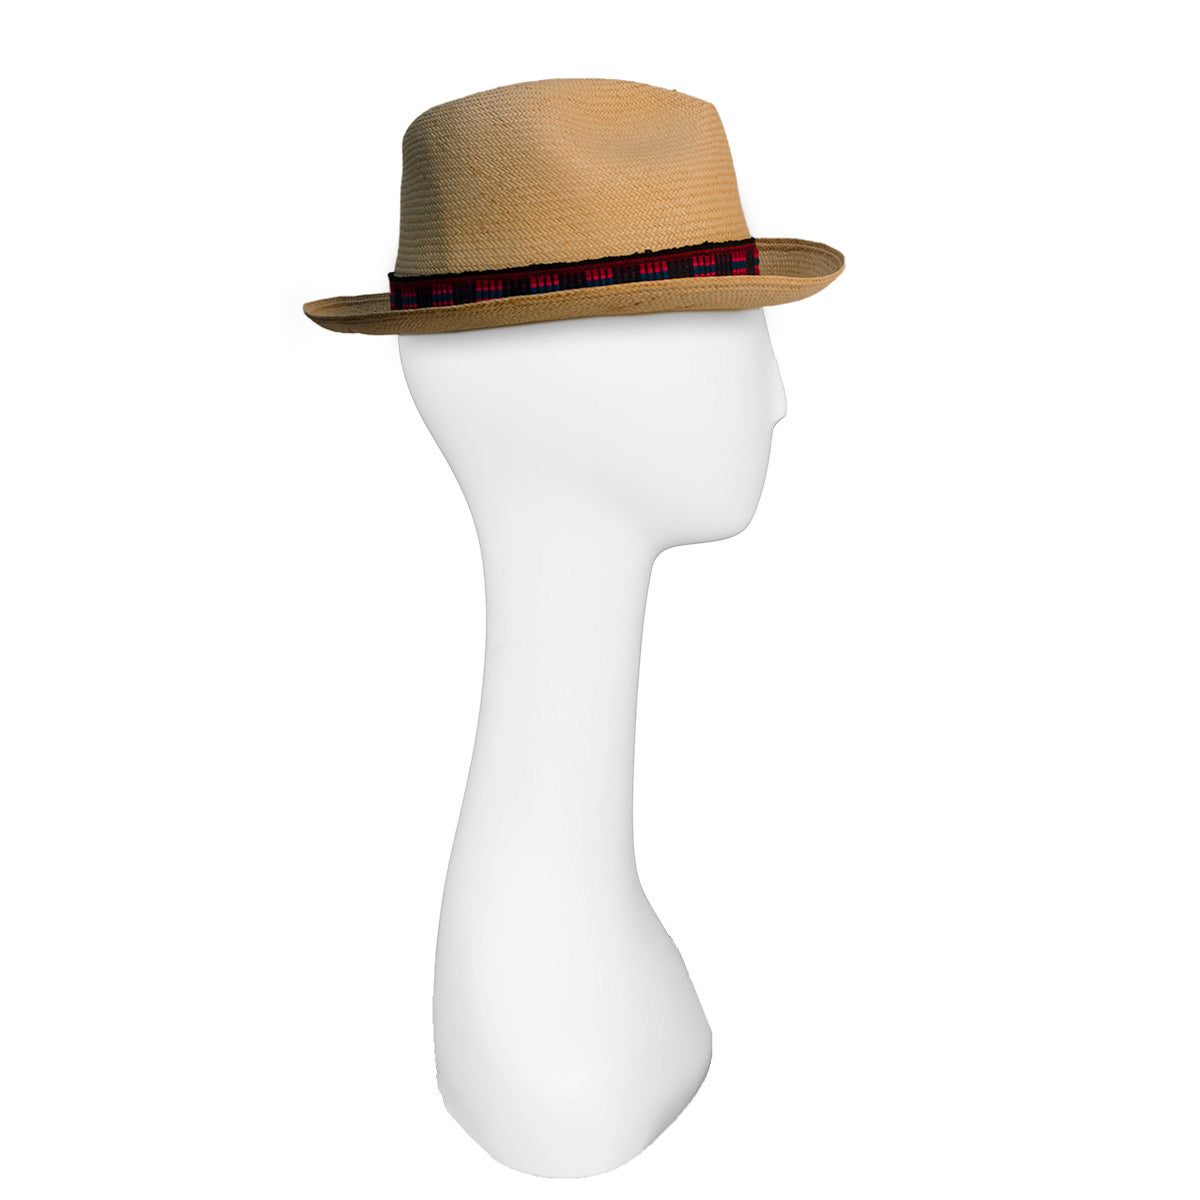 Straw Fedora, Red & Black Hatband 3